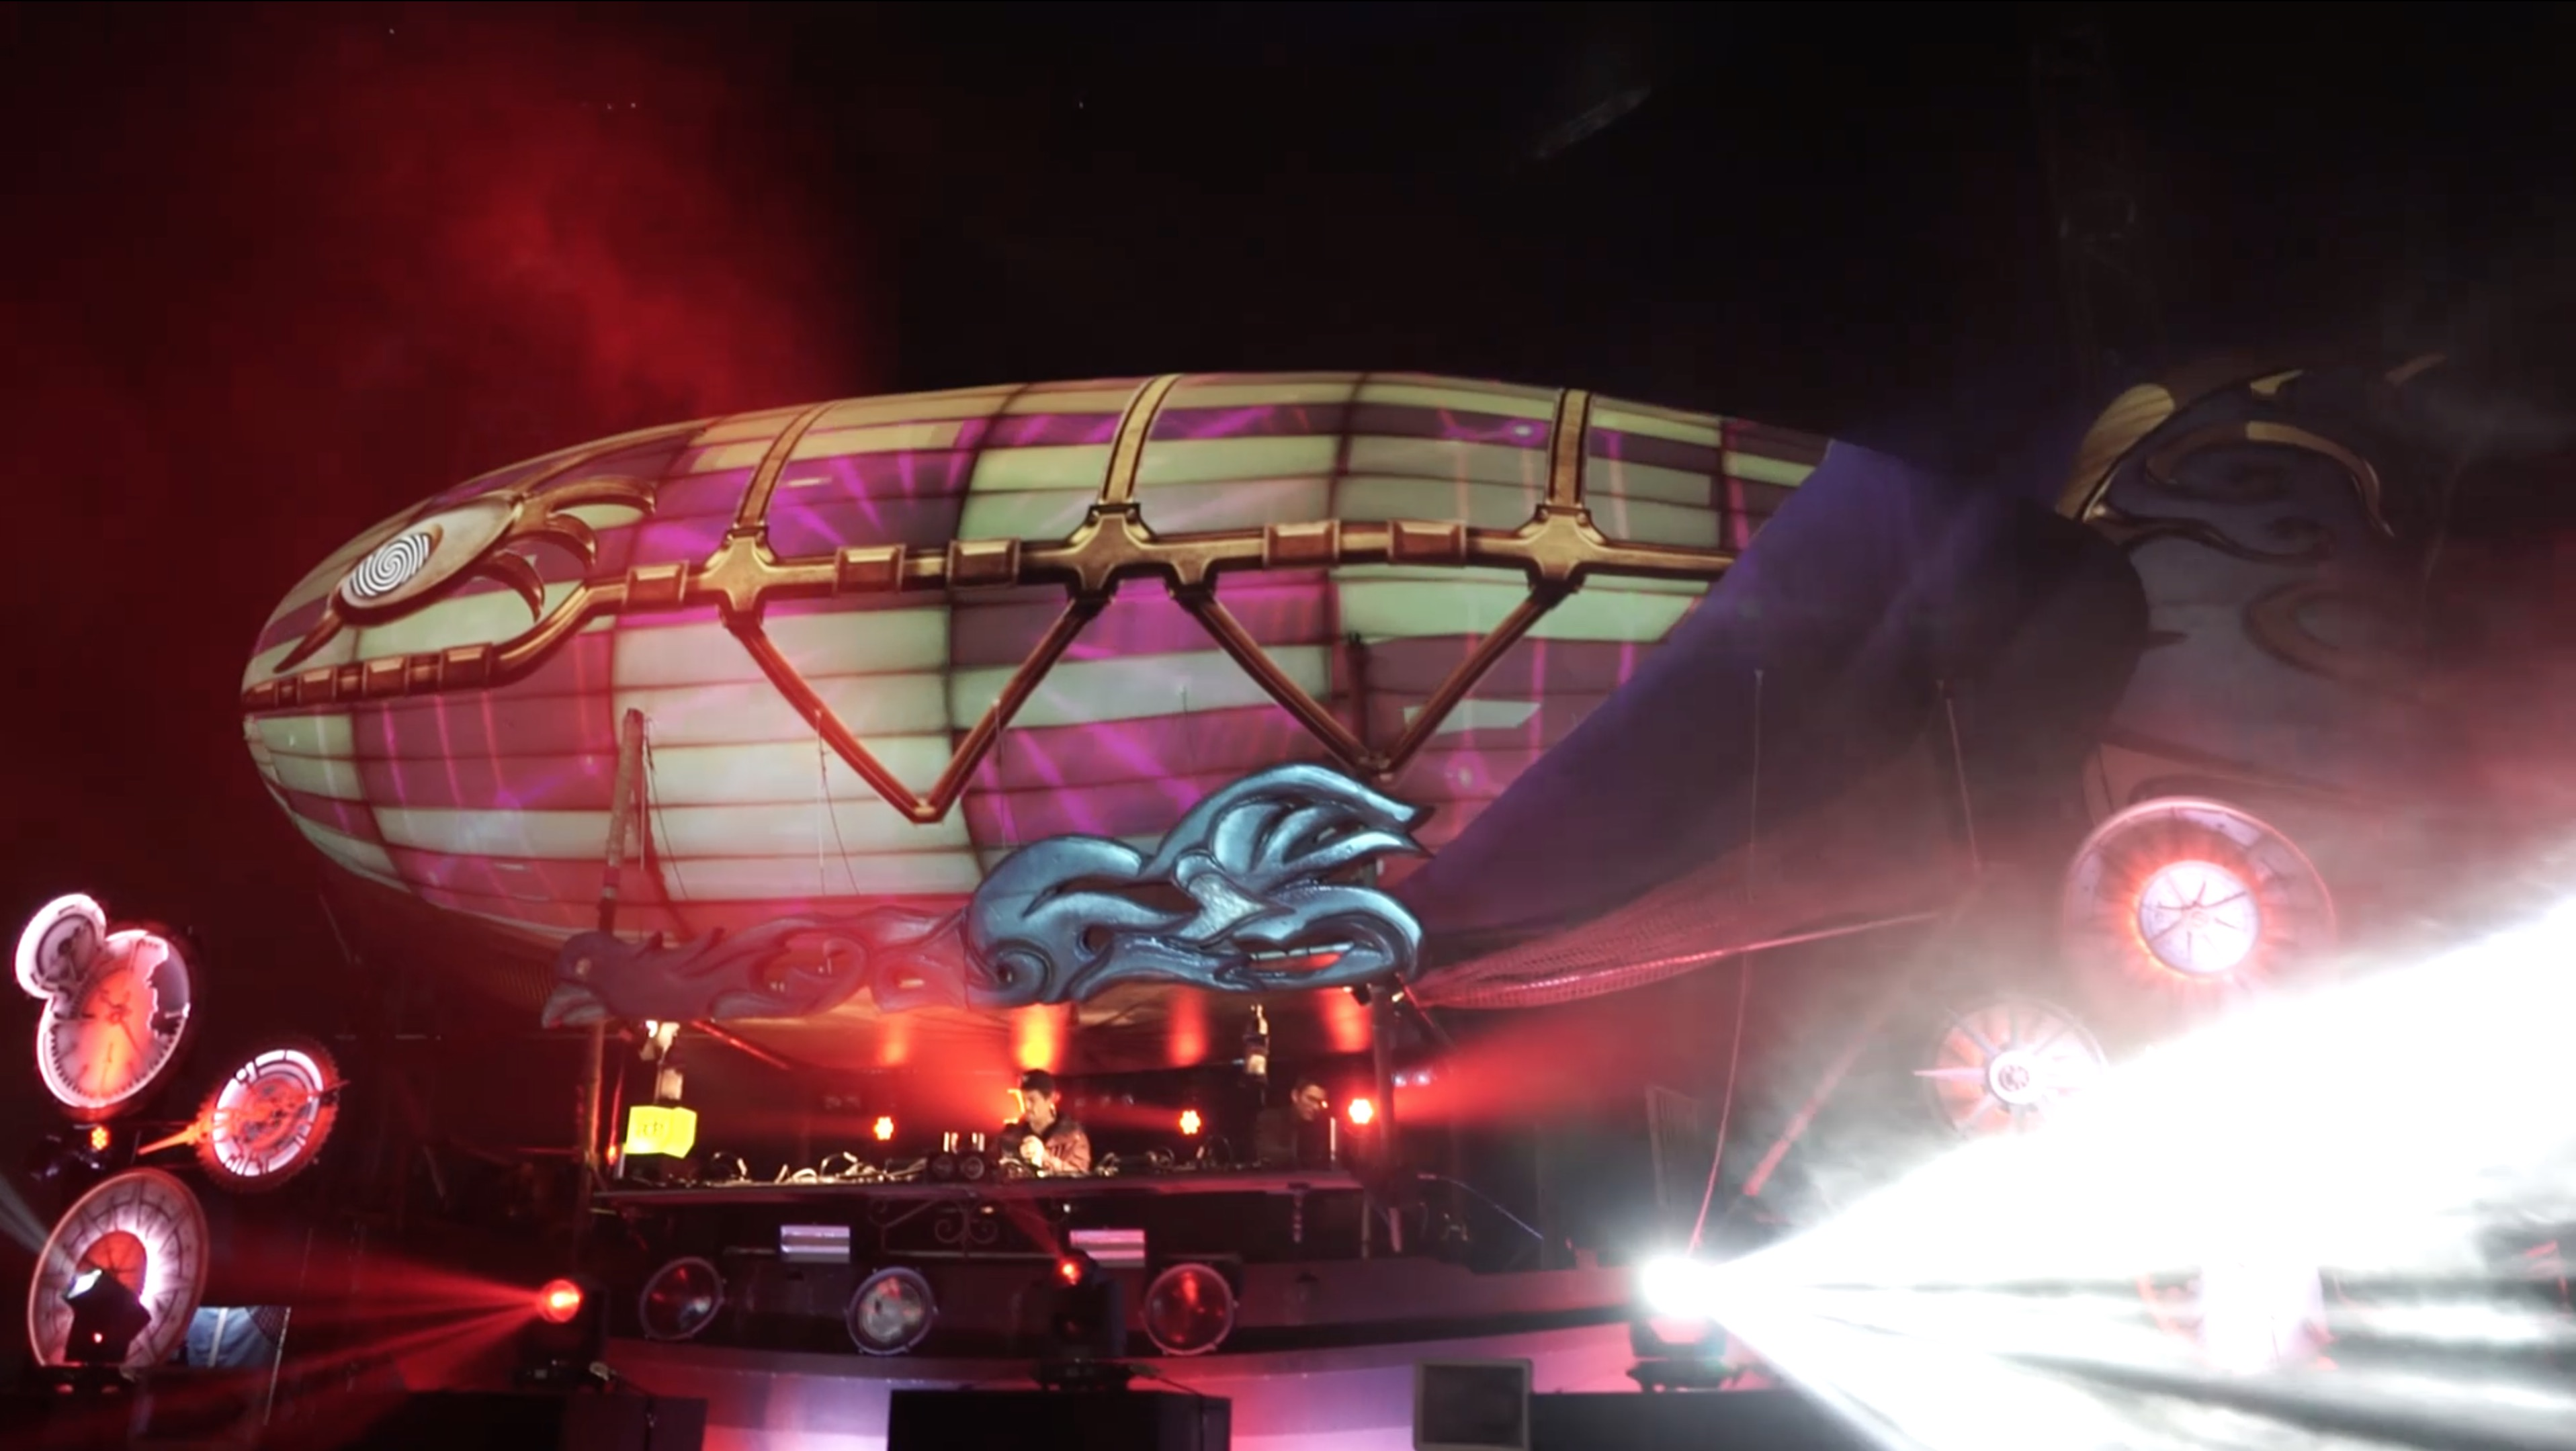 ADE Mystic garden Dockyard – Once upon a time stage